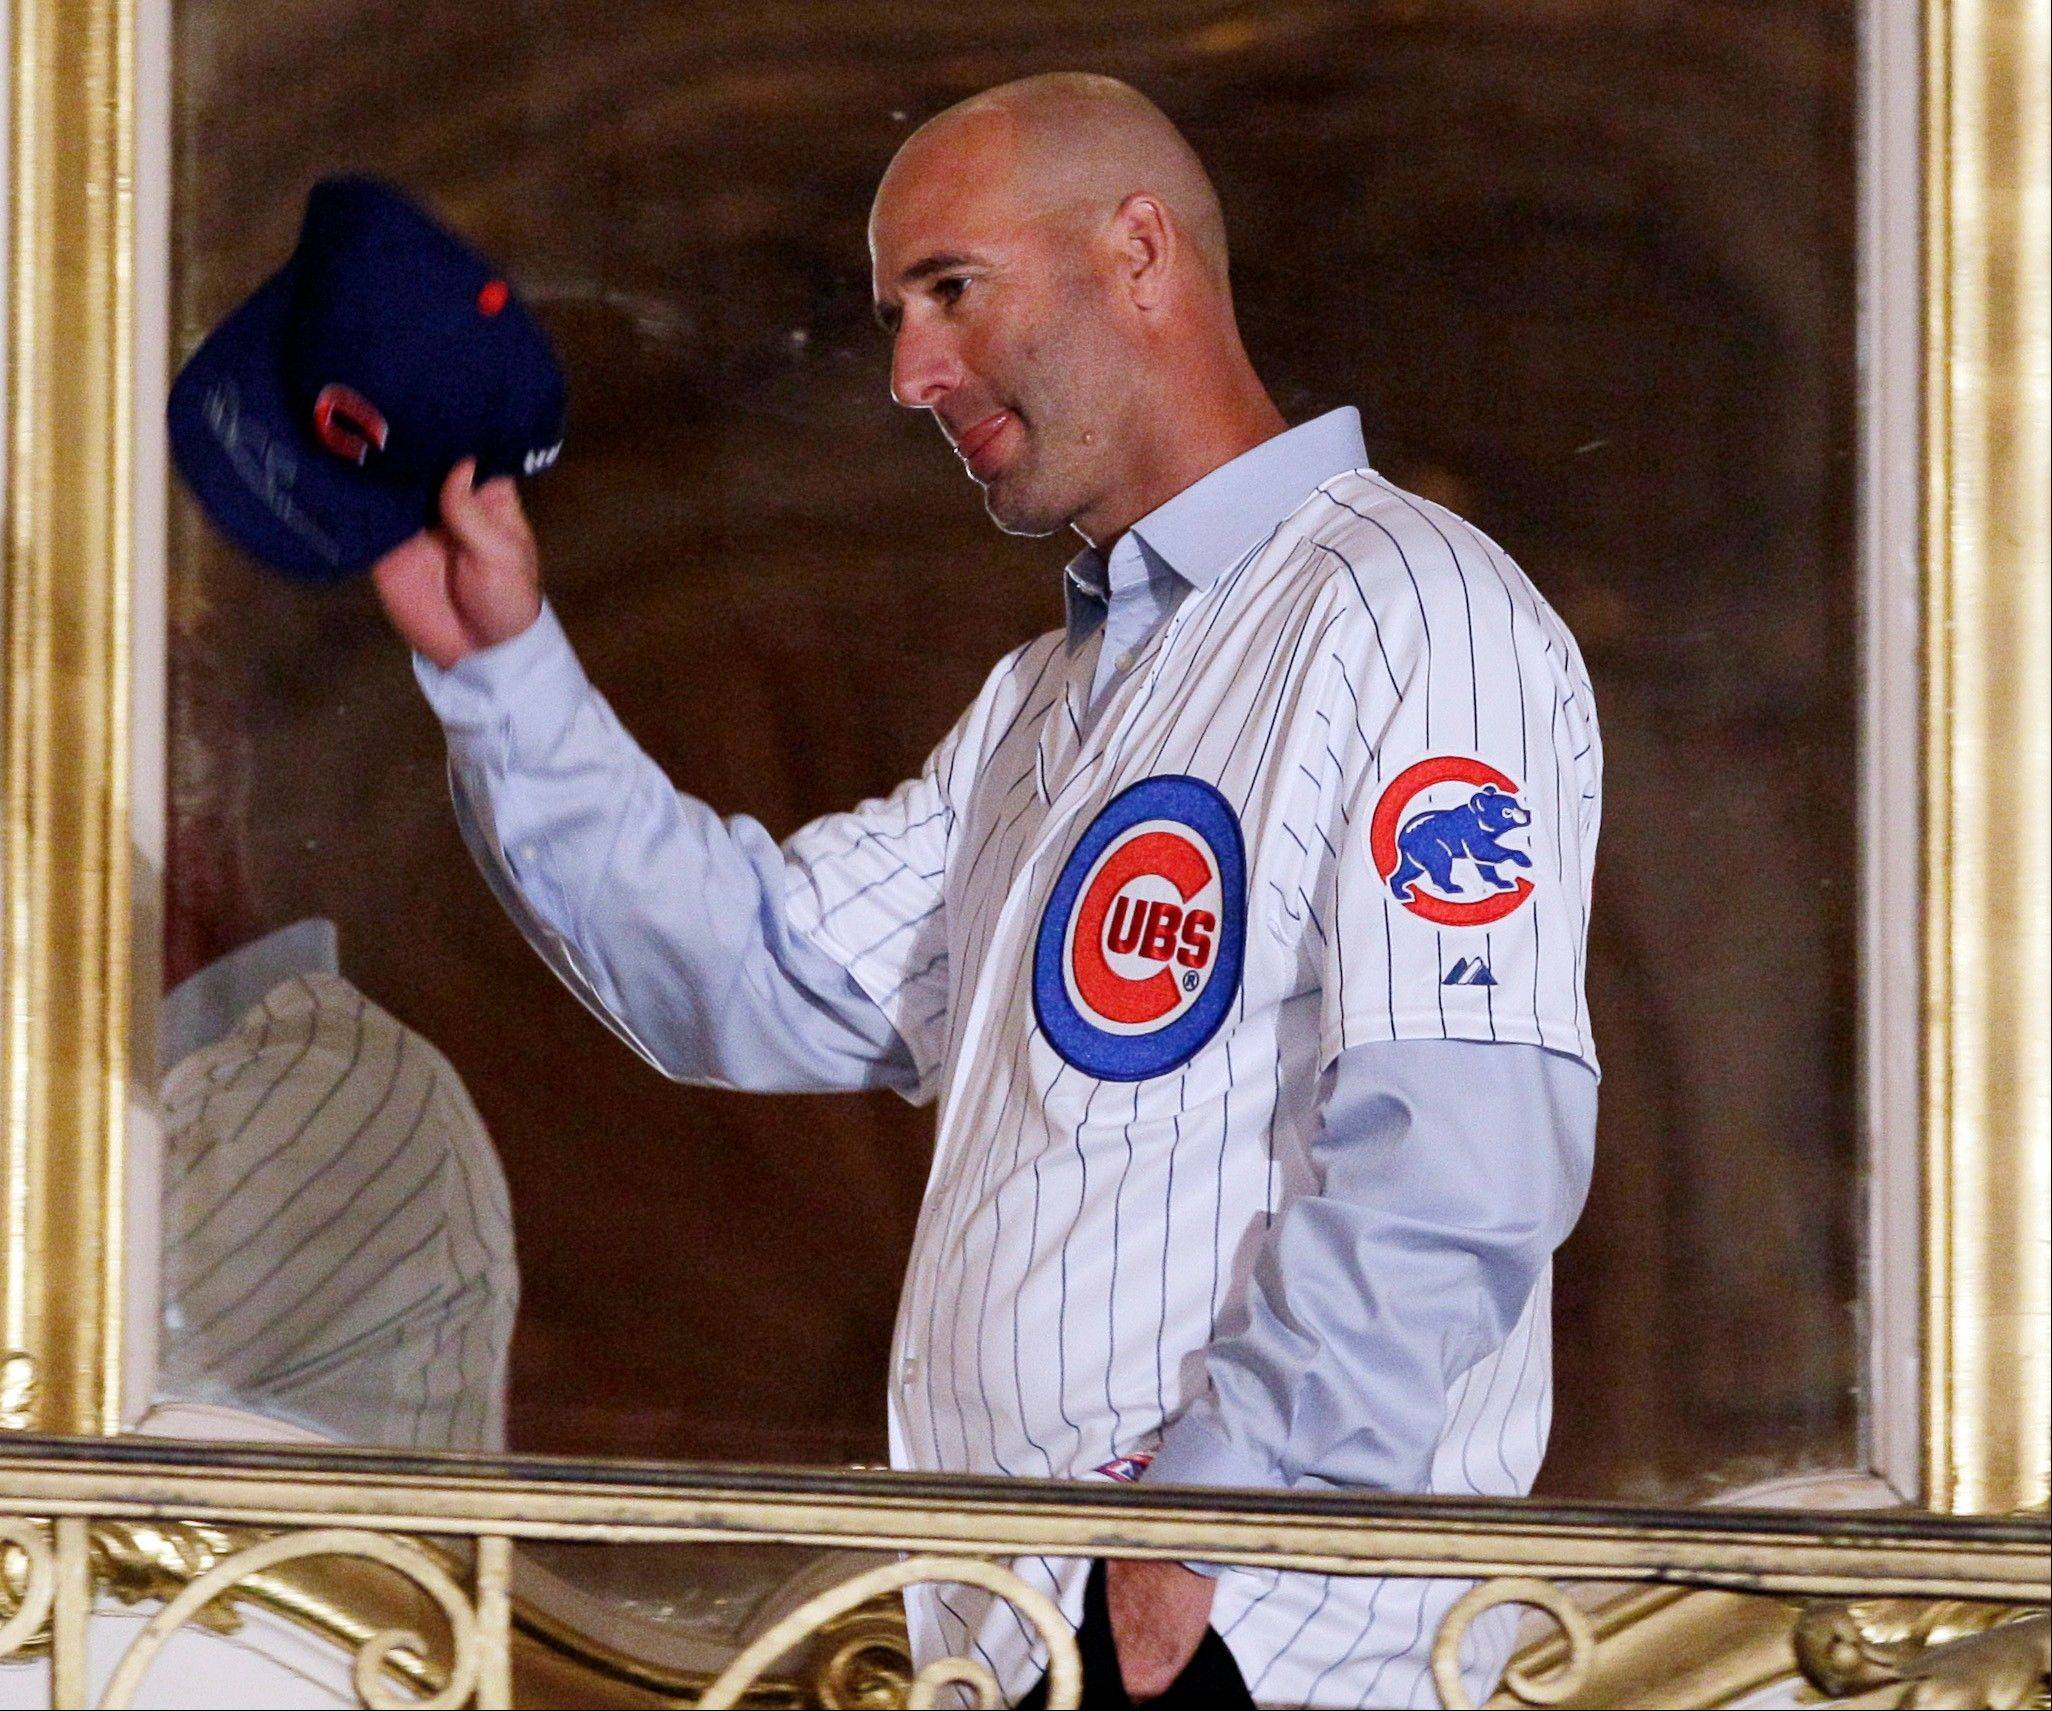 Chicago Cubs new manager Dale Sveum waves to fans during the 27th Annual Chicago Cubs Convention in Chicago on Friday, Jan. 13, 2012.